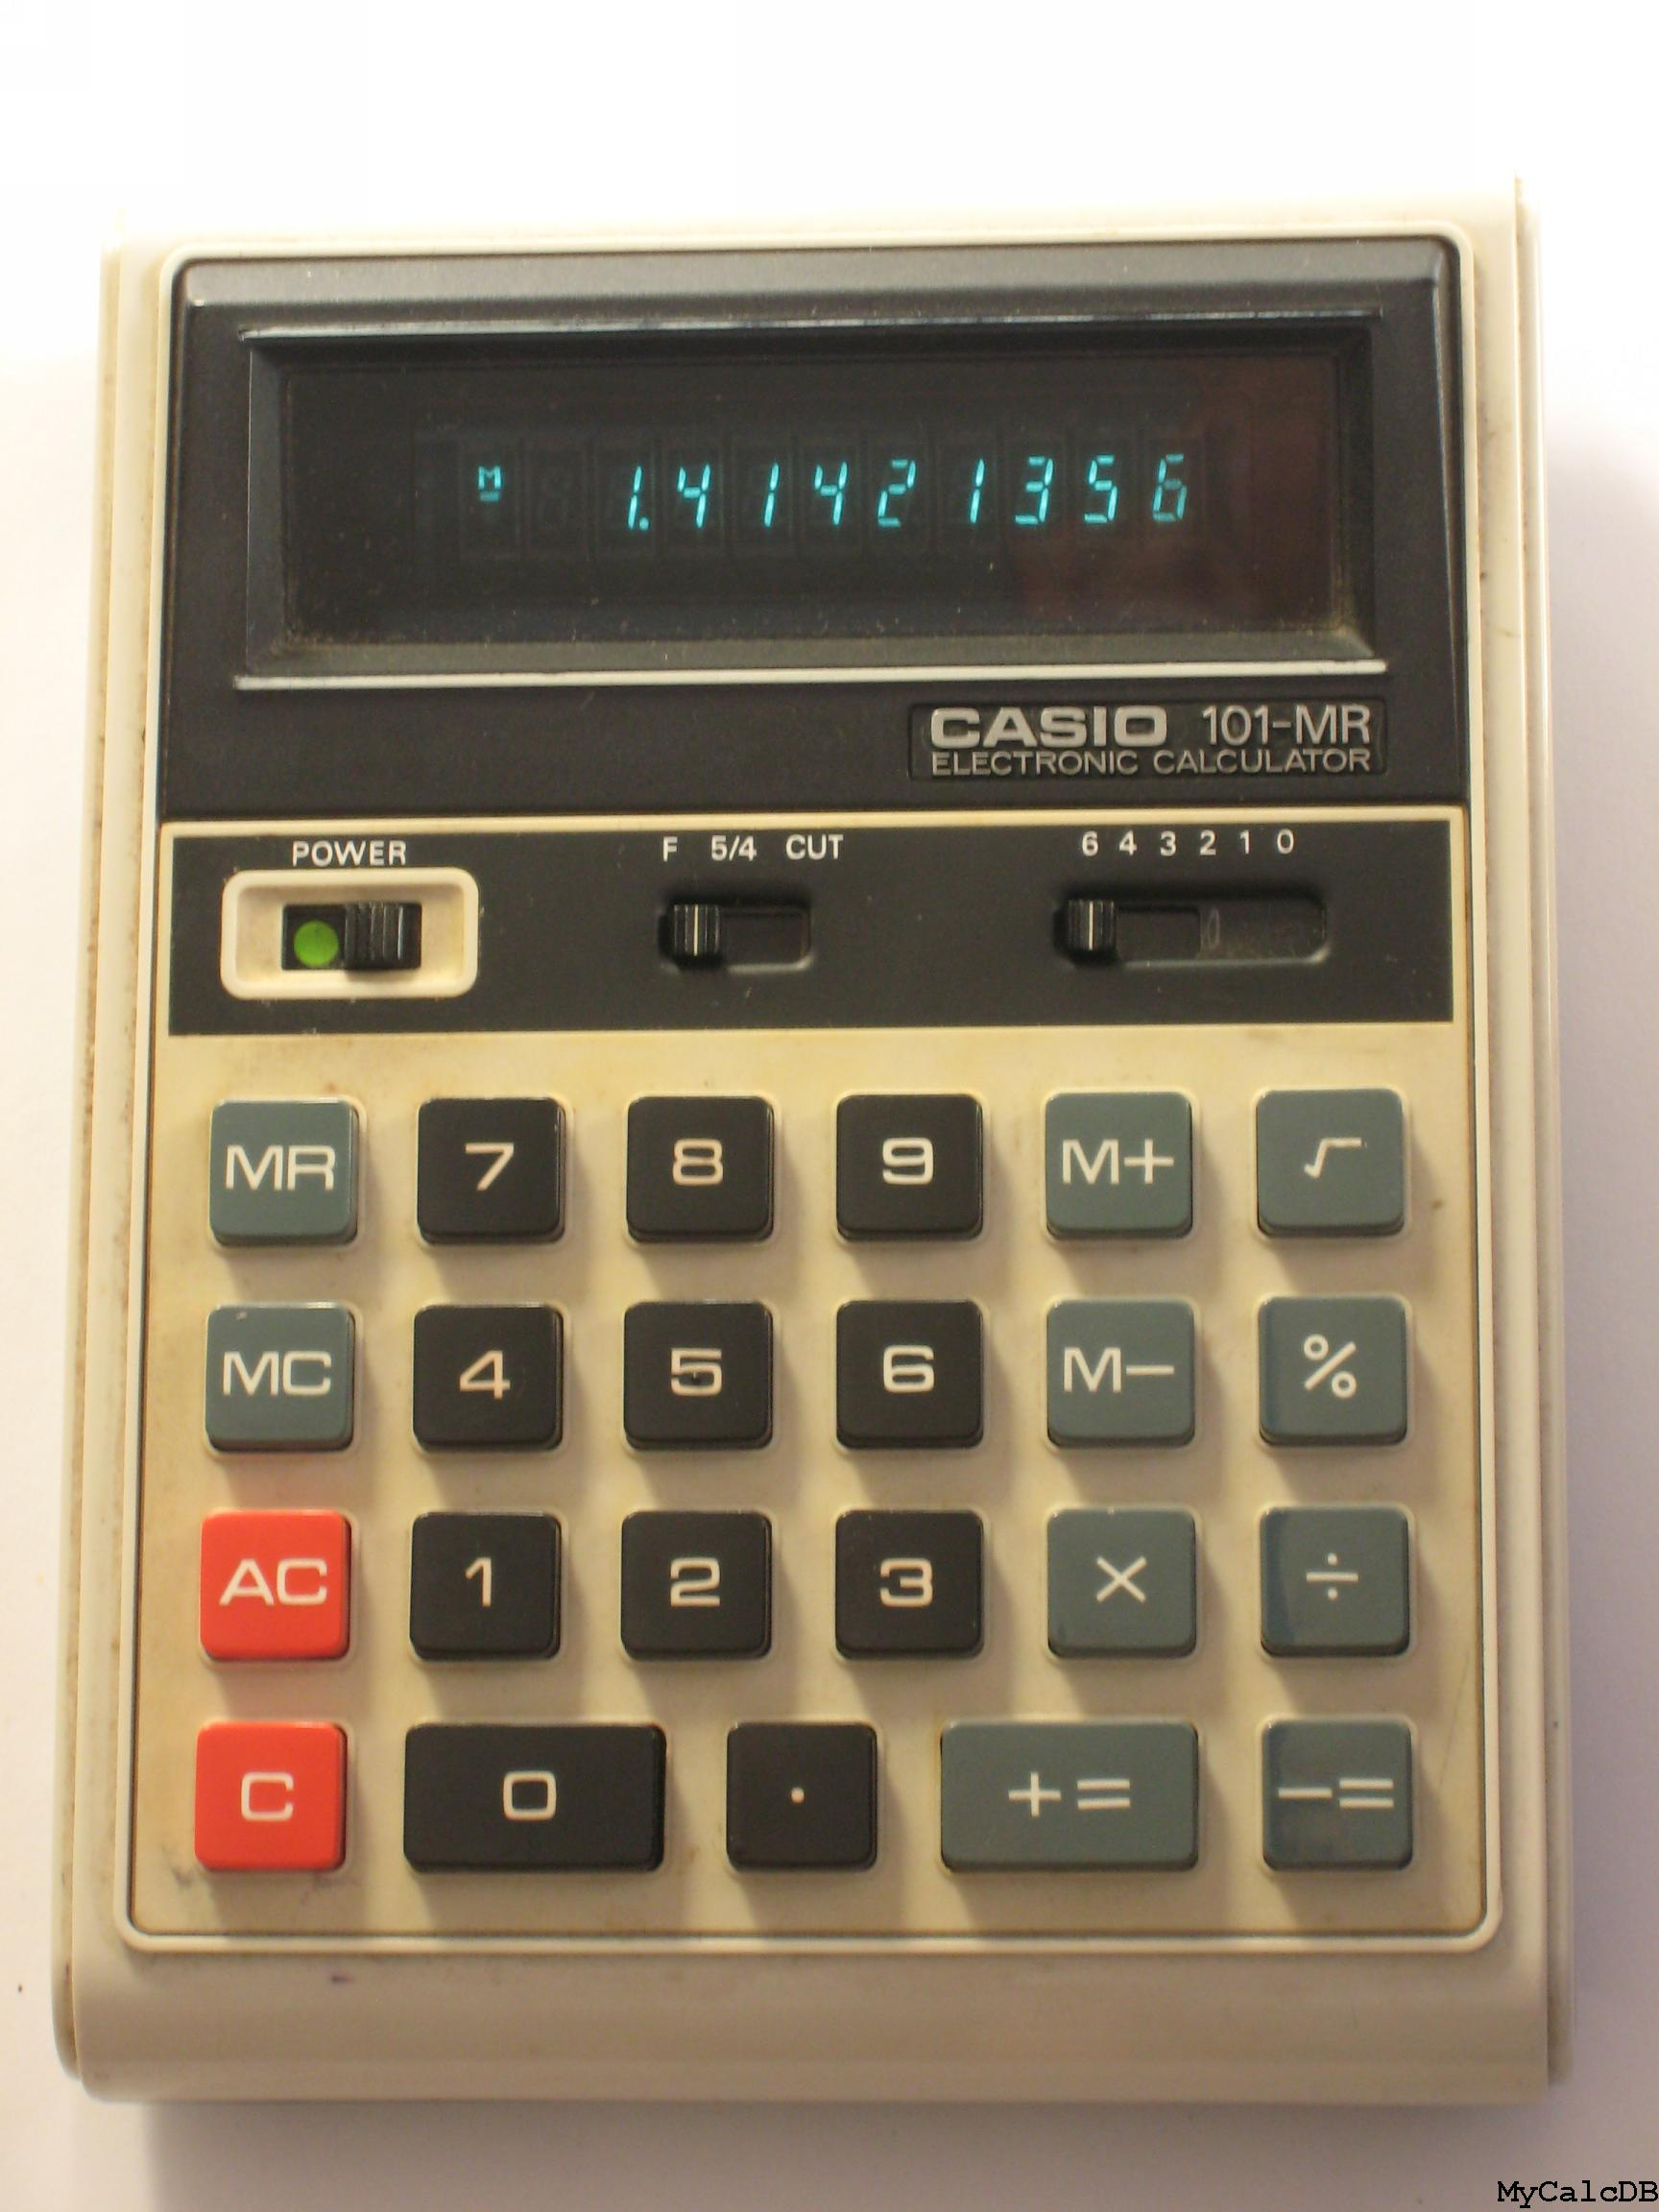 Casio 101-MR